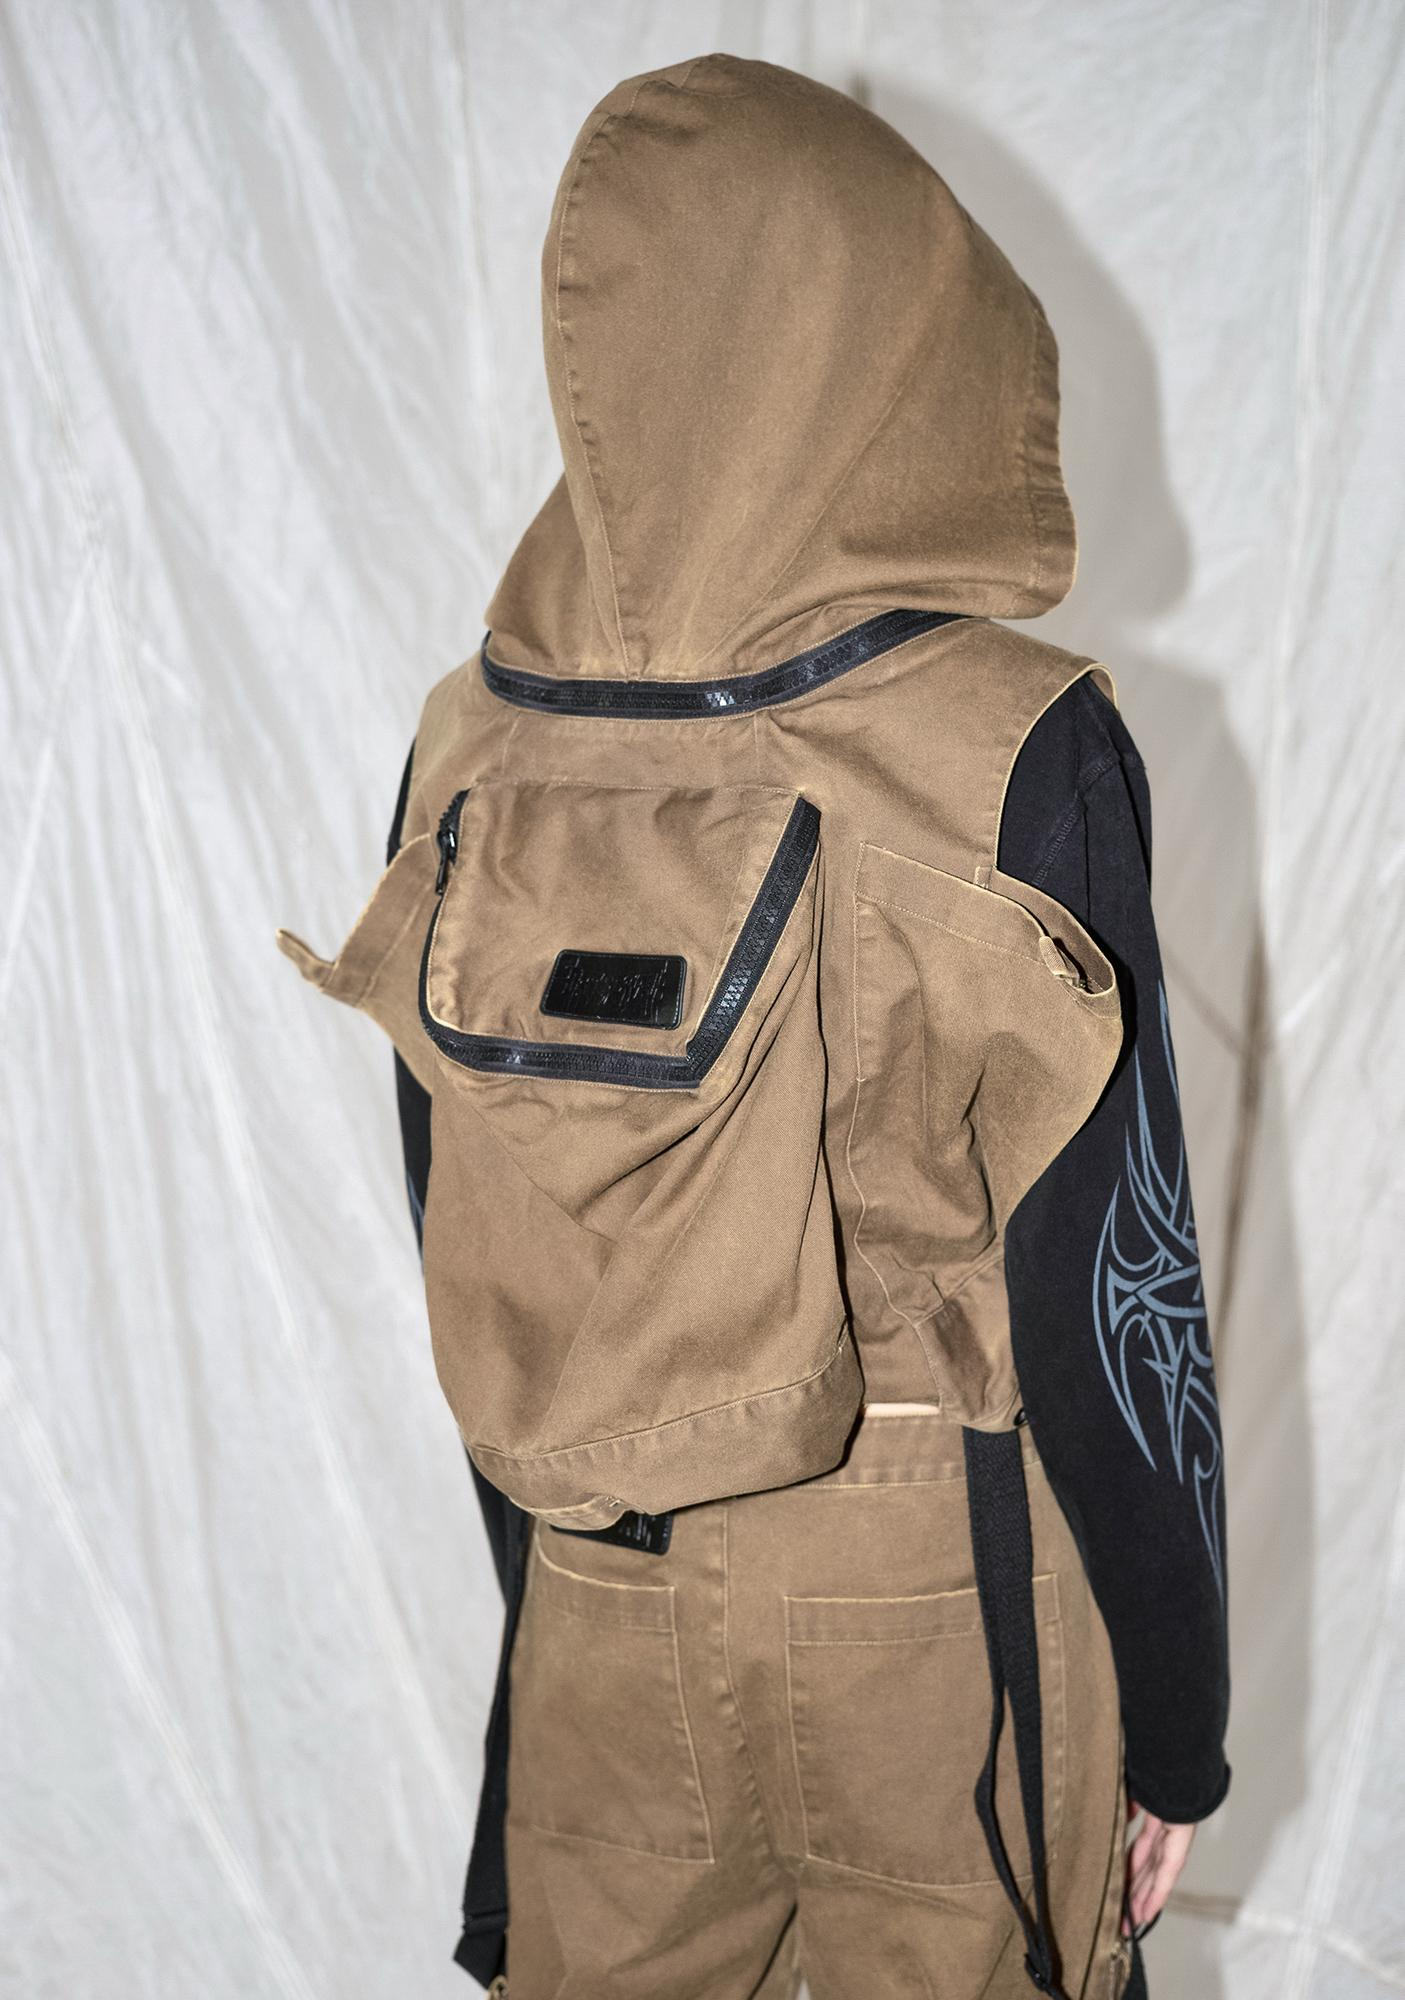 DARKER WAVS Synth Unisex Cargo Overalls With Attached Backpack